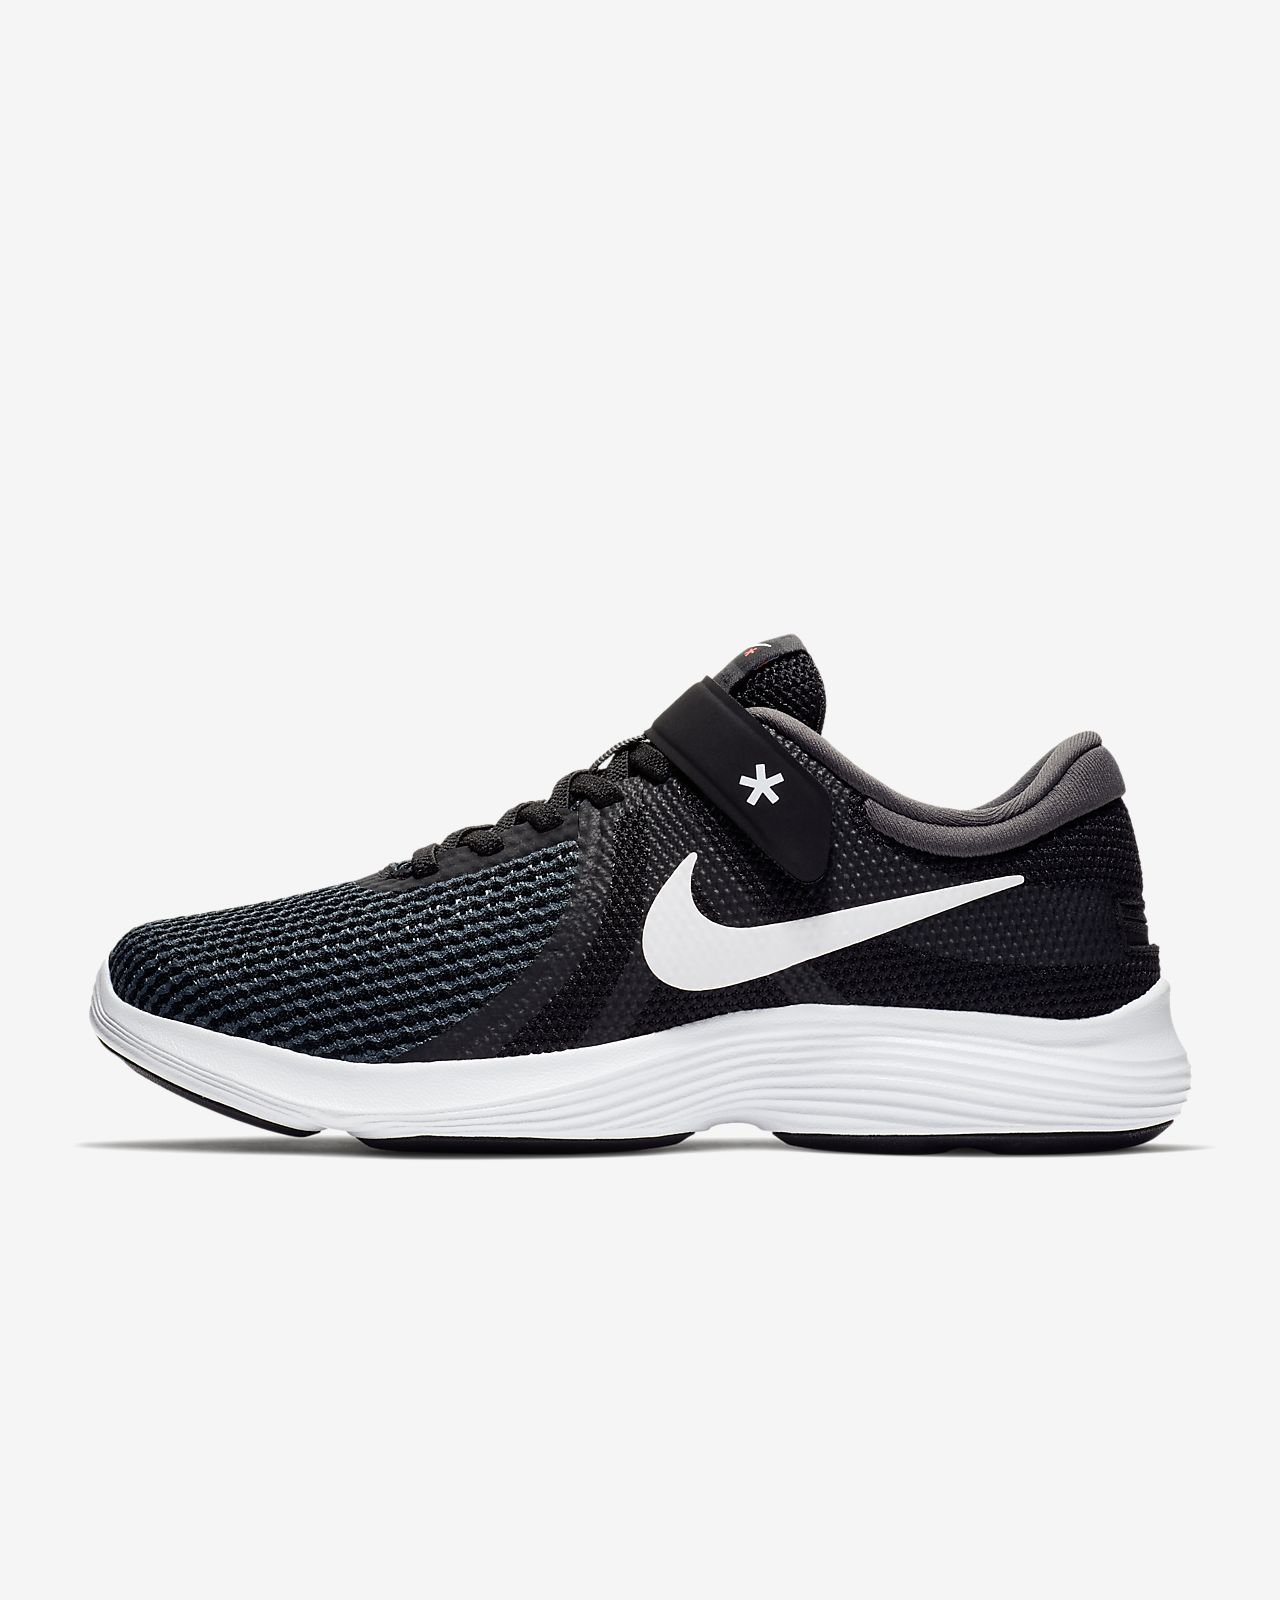 100% authentic ded80 021a3 ... Chaussure de running Nike Revolution 4 FlyEase pour Femme